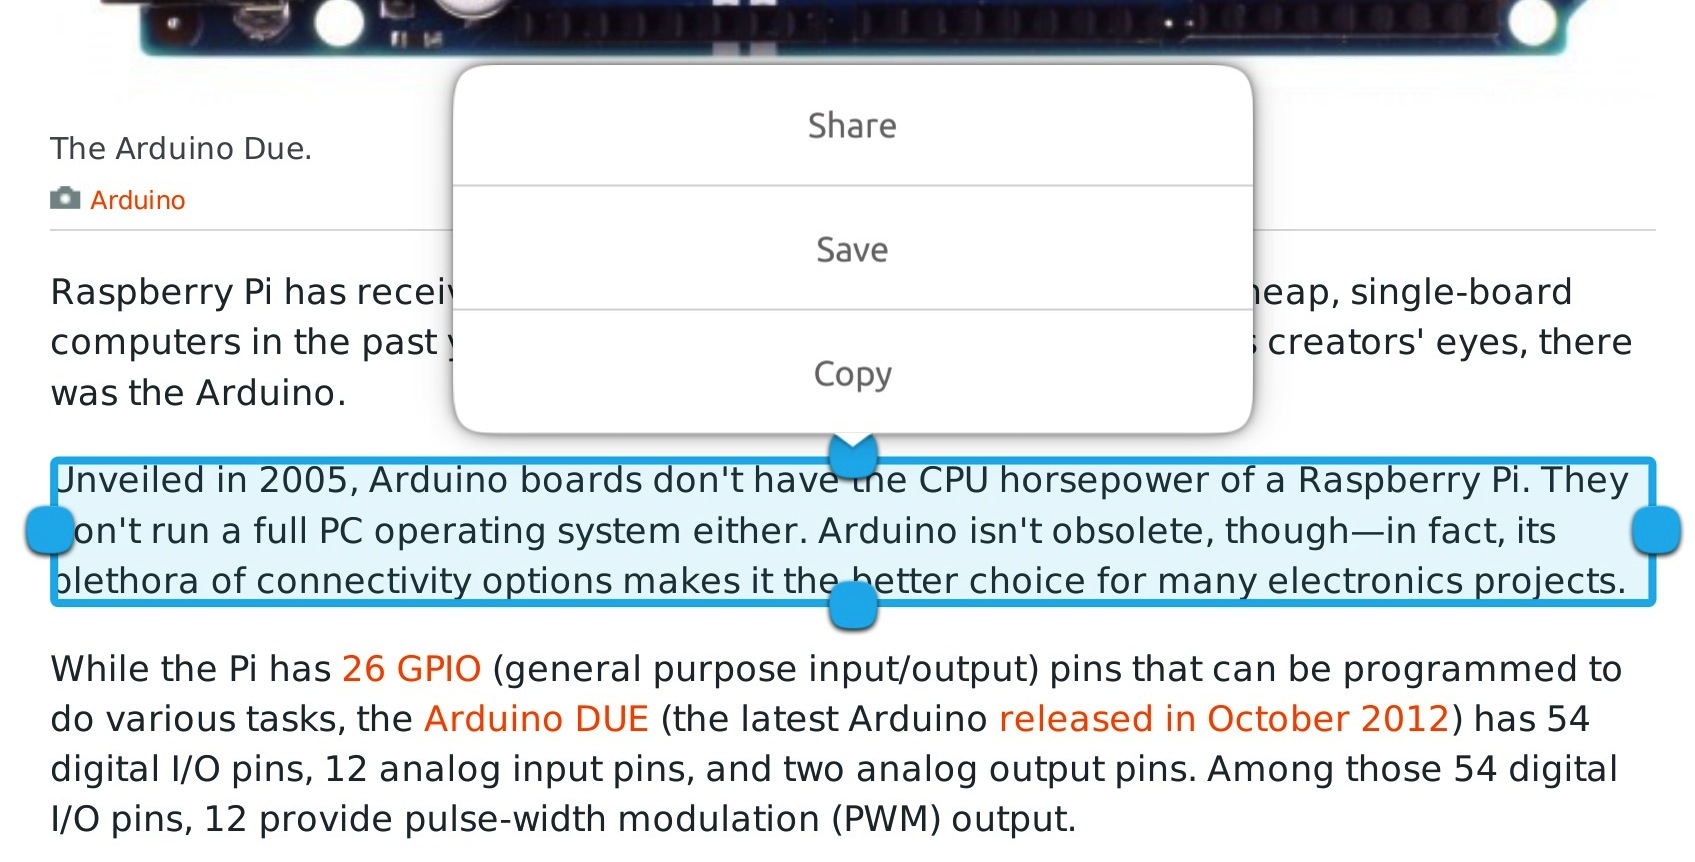 You can't copy and paste anything smaller than a paragraph. Like so many other things in the OS, the Share and Save buttons don't appear to do anything yet.